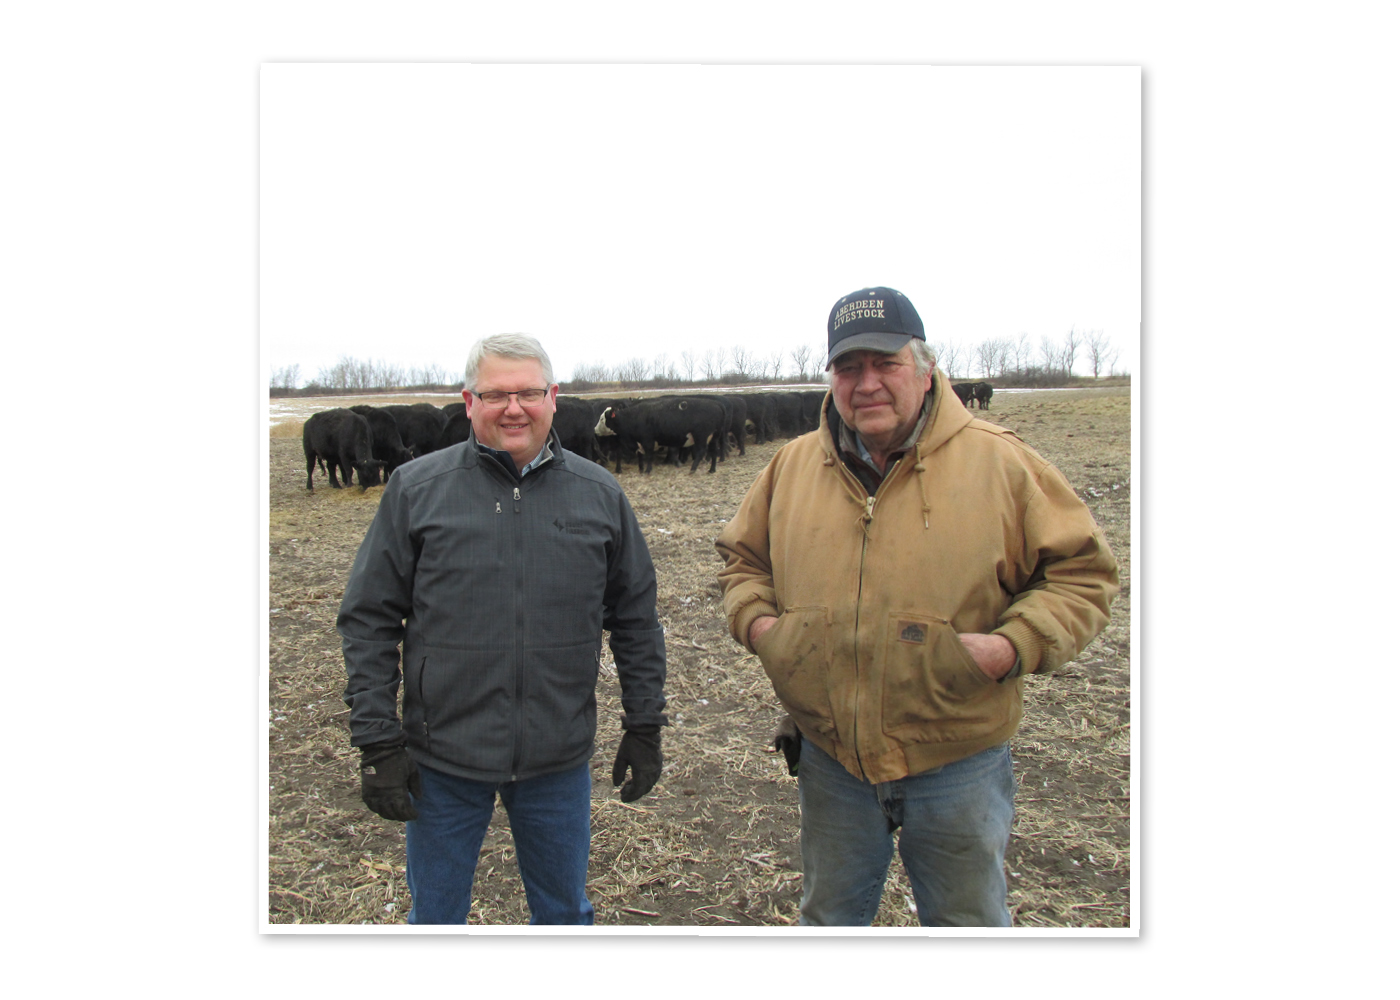 (left to right) Jeff Petersen and Jim Henningsen stand together with cattle behind them